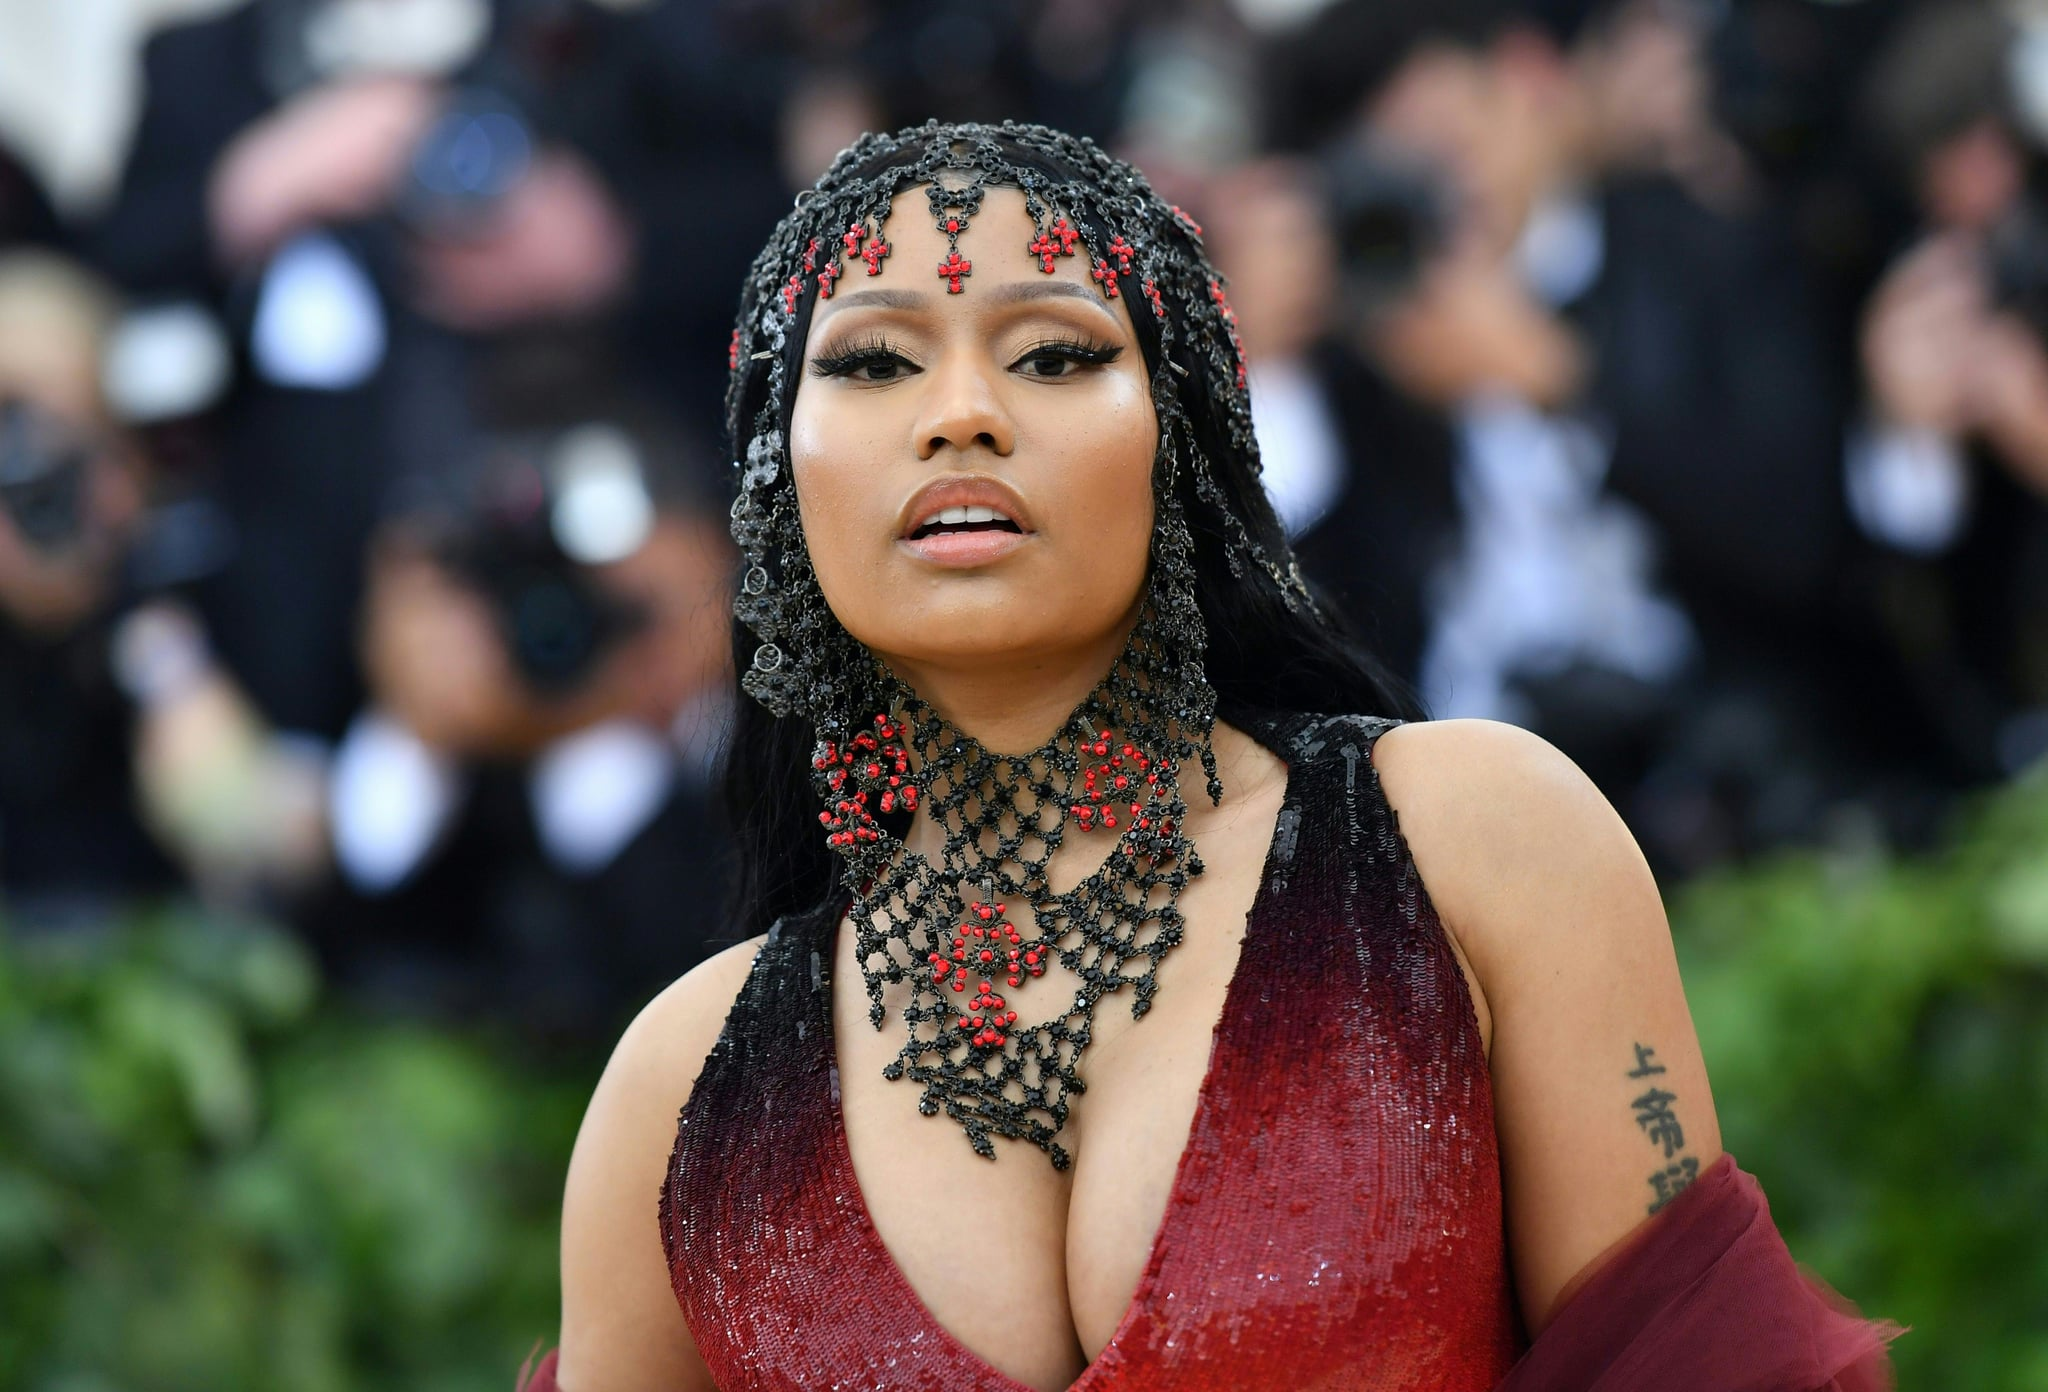 Rapper Nicki Minaj arrives for the 2018 Met Gala on May 7, 2018, at the Metropolitan Museum of Art in New York. (Photo by Angela WEISS / AFP)        (Photo credit should read ANGELA WEISS/AFP via Getty Images)